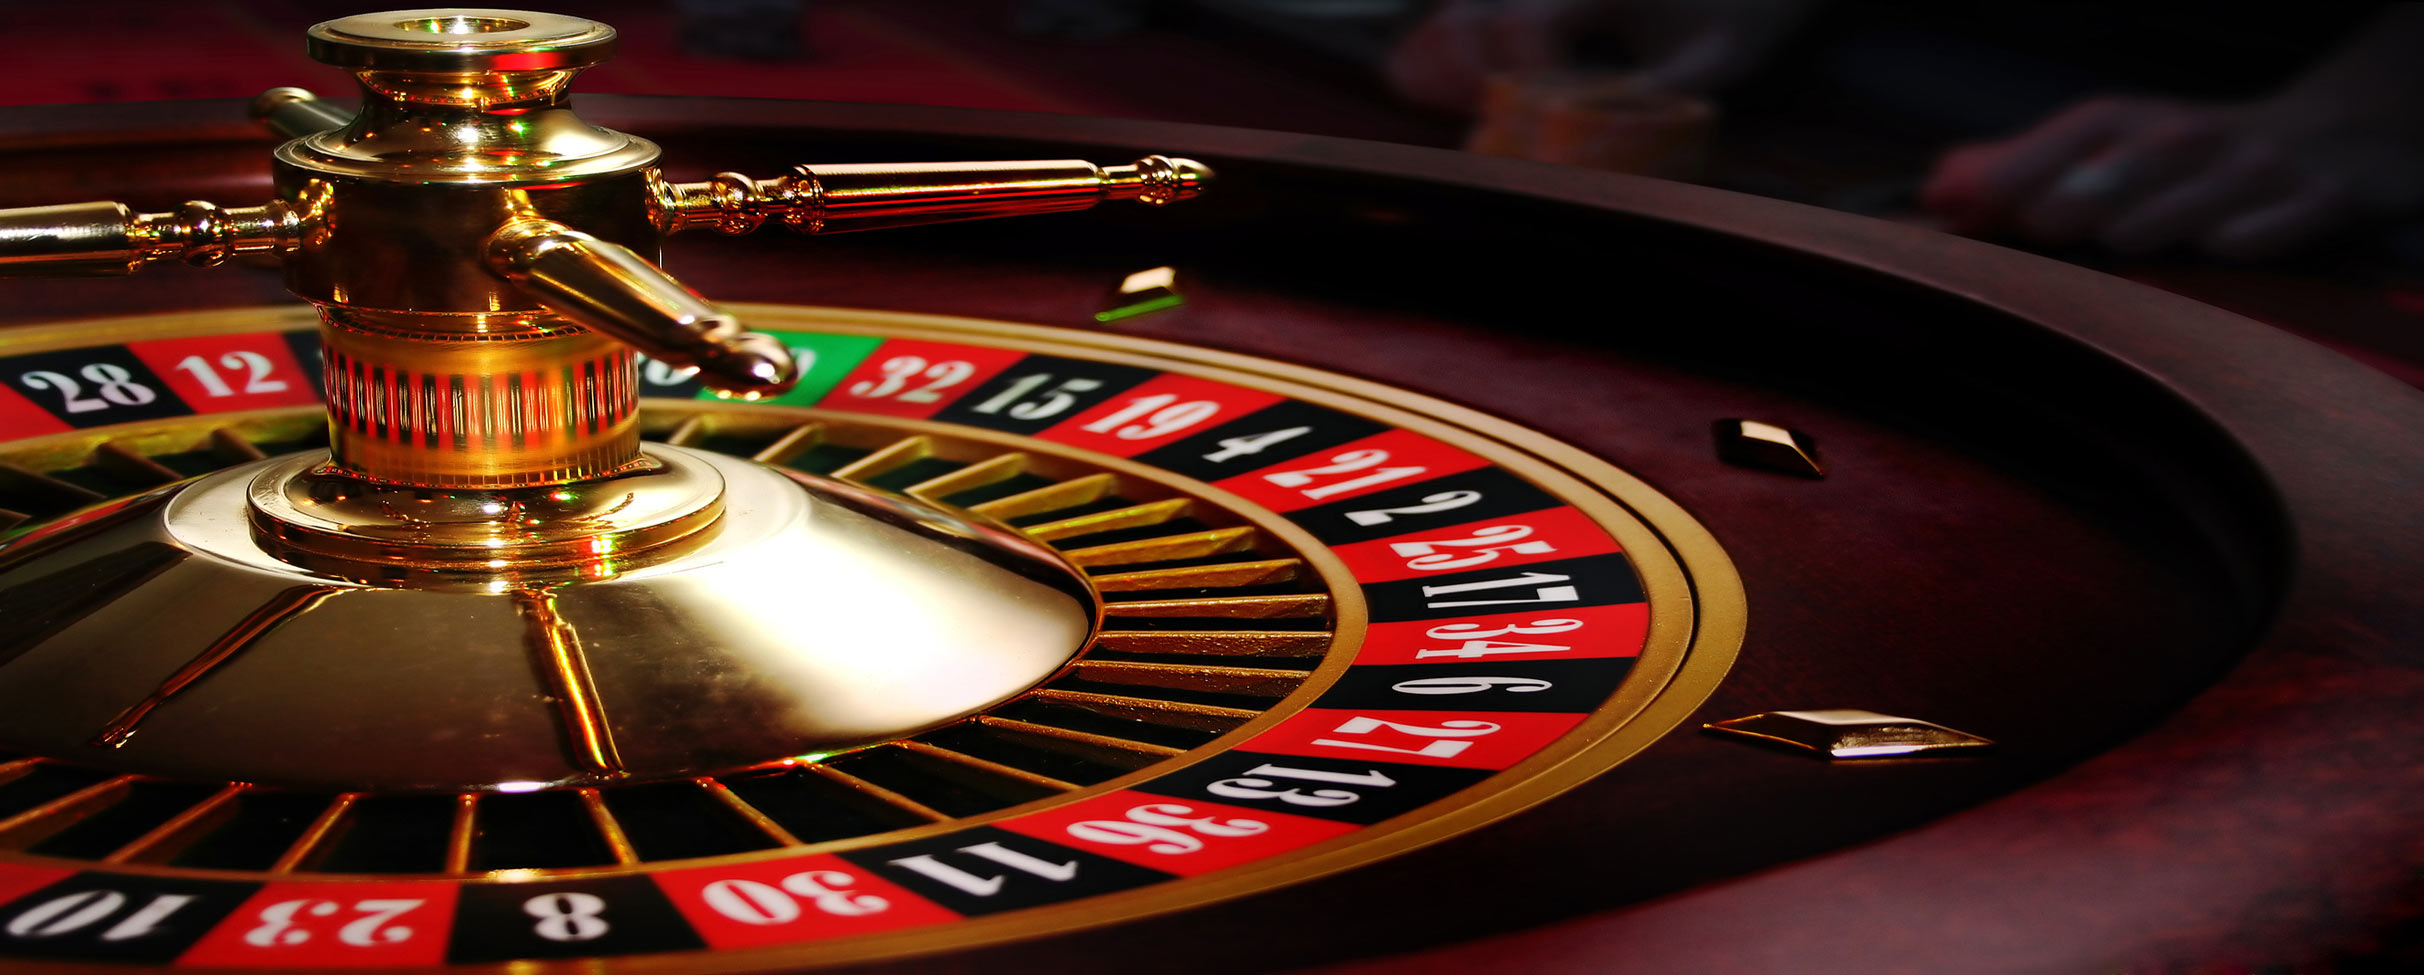 How To Play Roulette – Table Games Made Easy